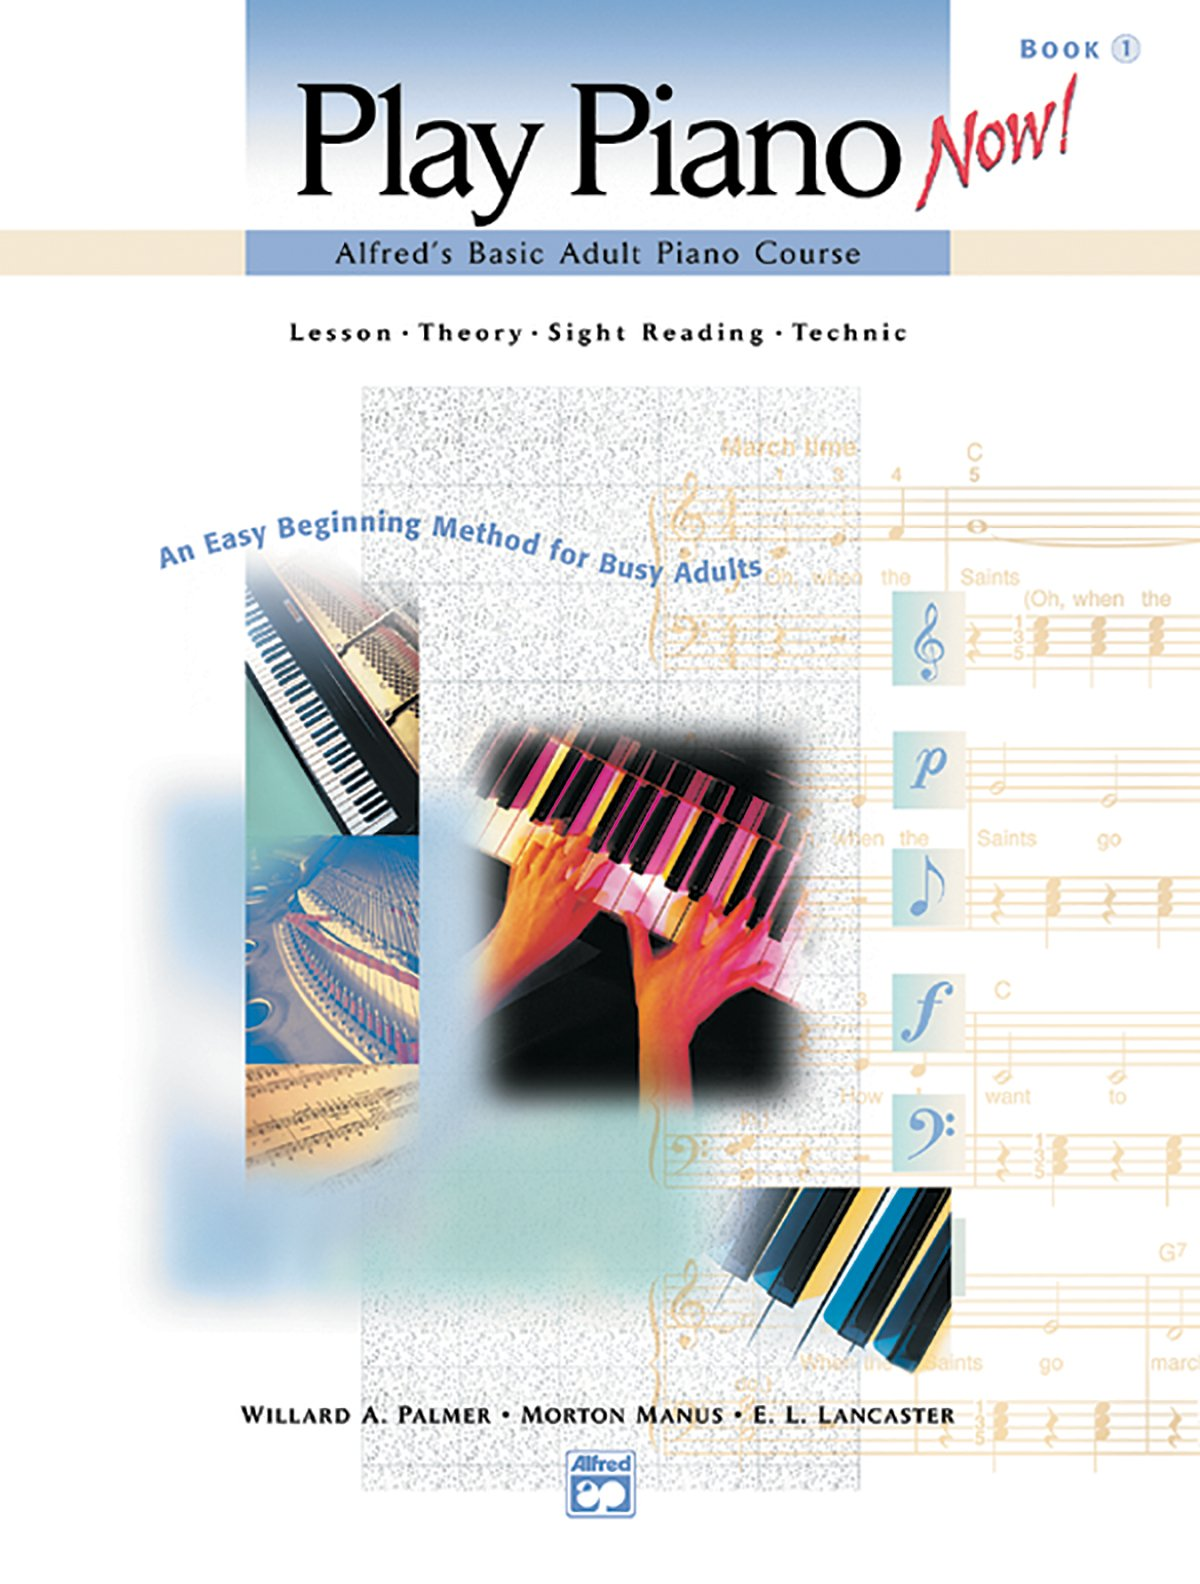 Play Piano Now!  Alfred's Basic Adult Piano Course Lesson - Theory - Sight reading - Technic Book 1 pdf